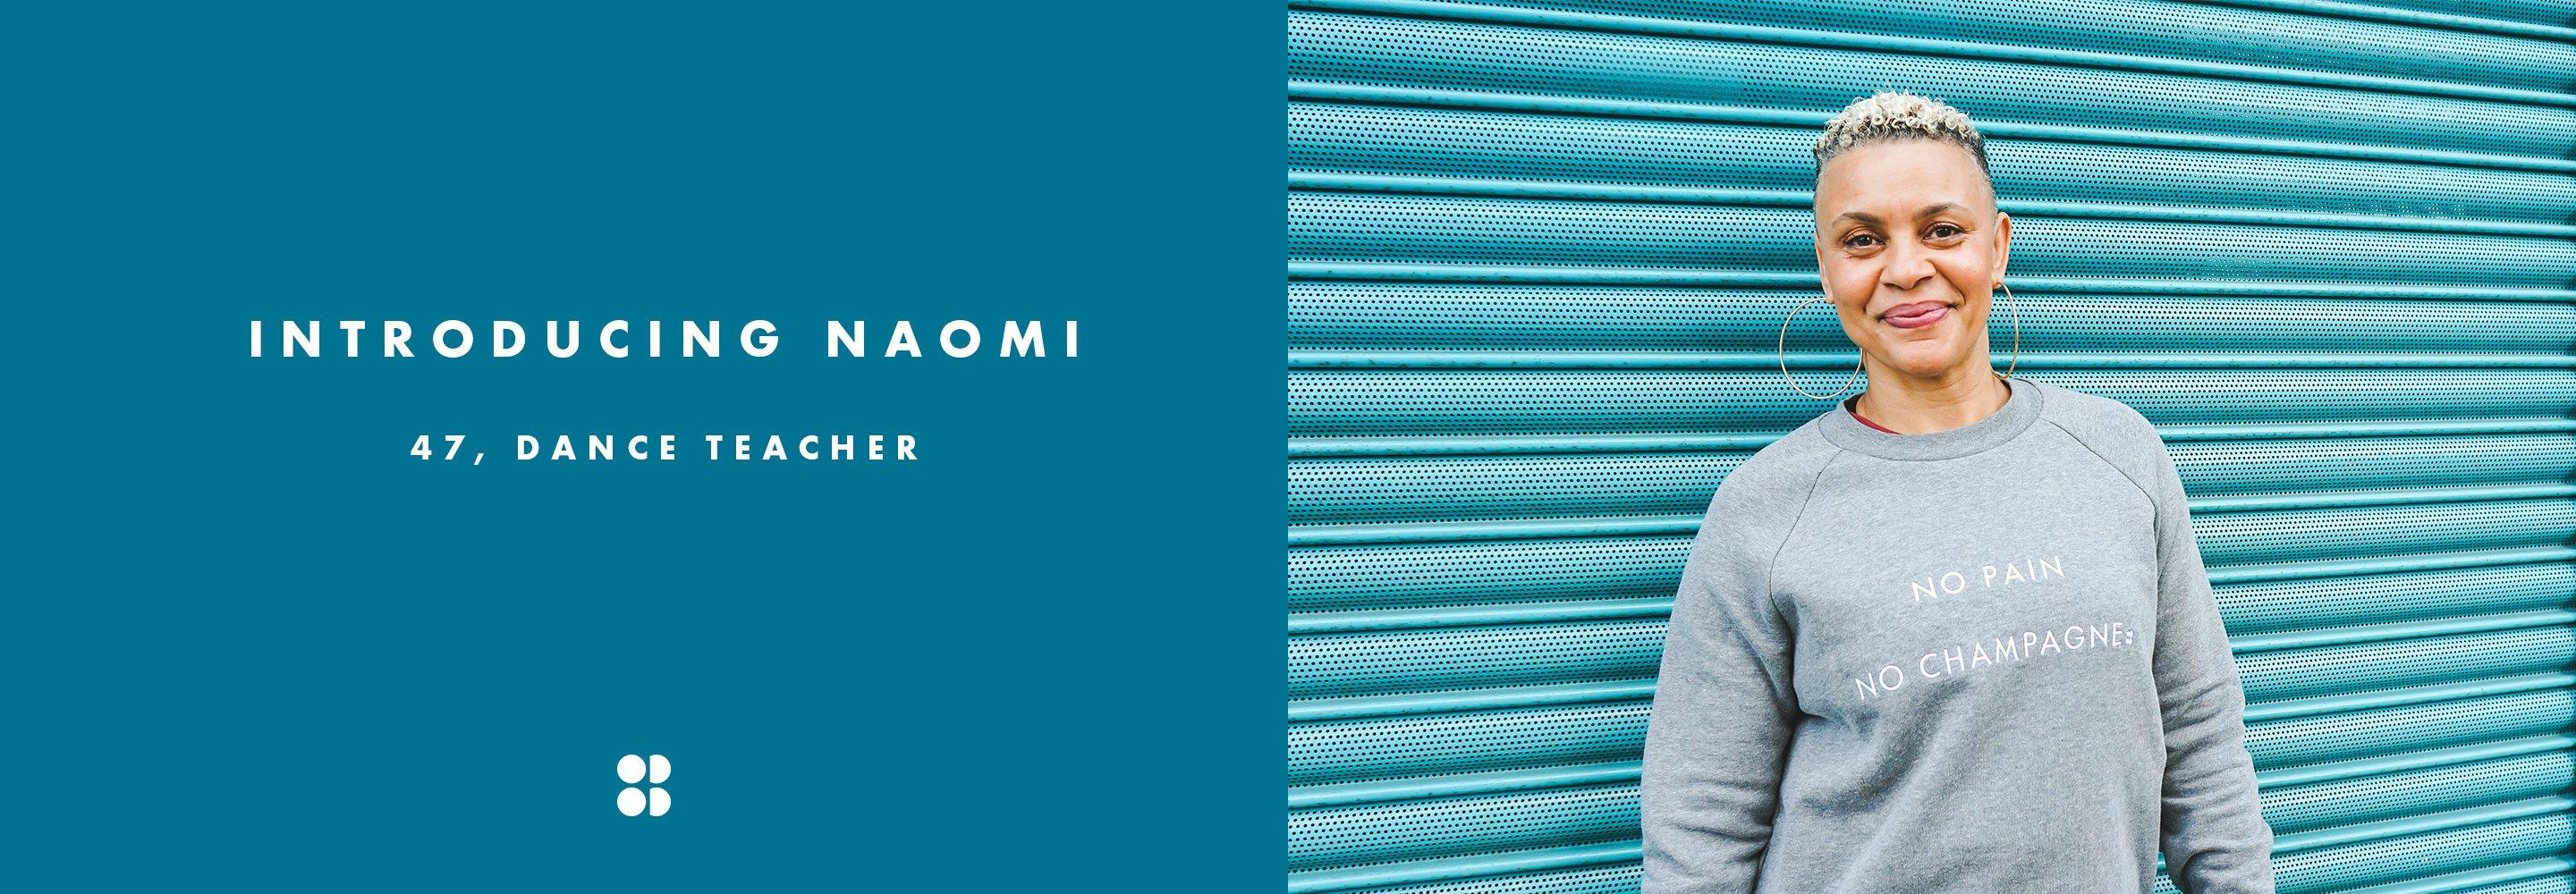 Women Rule: Meet Naomi